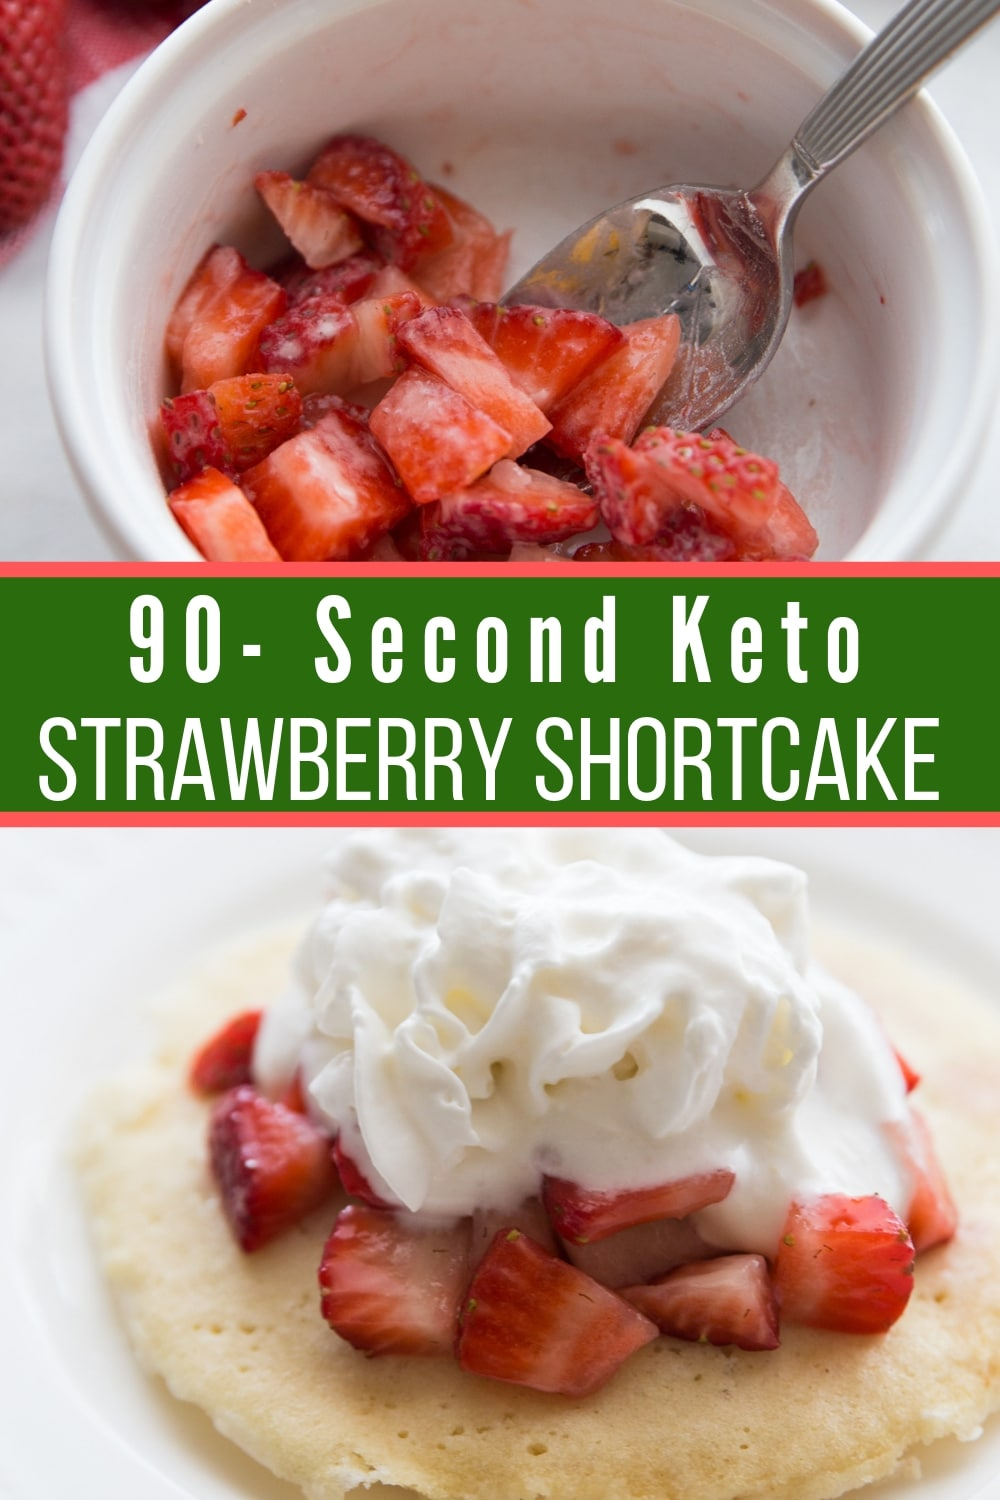 This easy 90-Second Keto Strawberry Shortcake is delicious and full of sweet berry flavor for an incredible low carb dessert. #keto #lowcarb